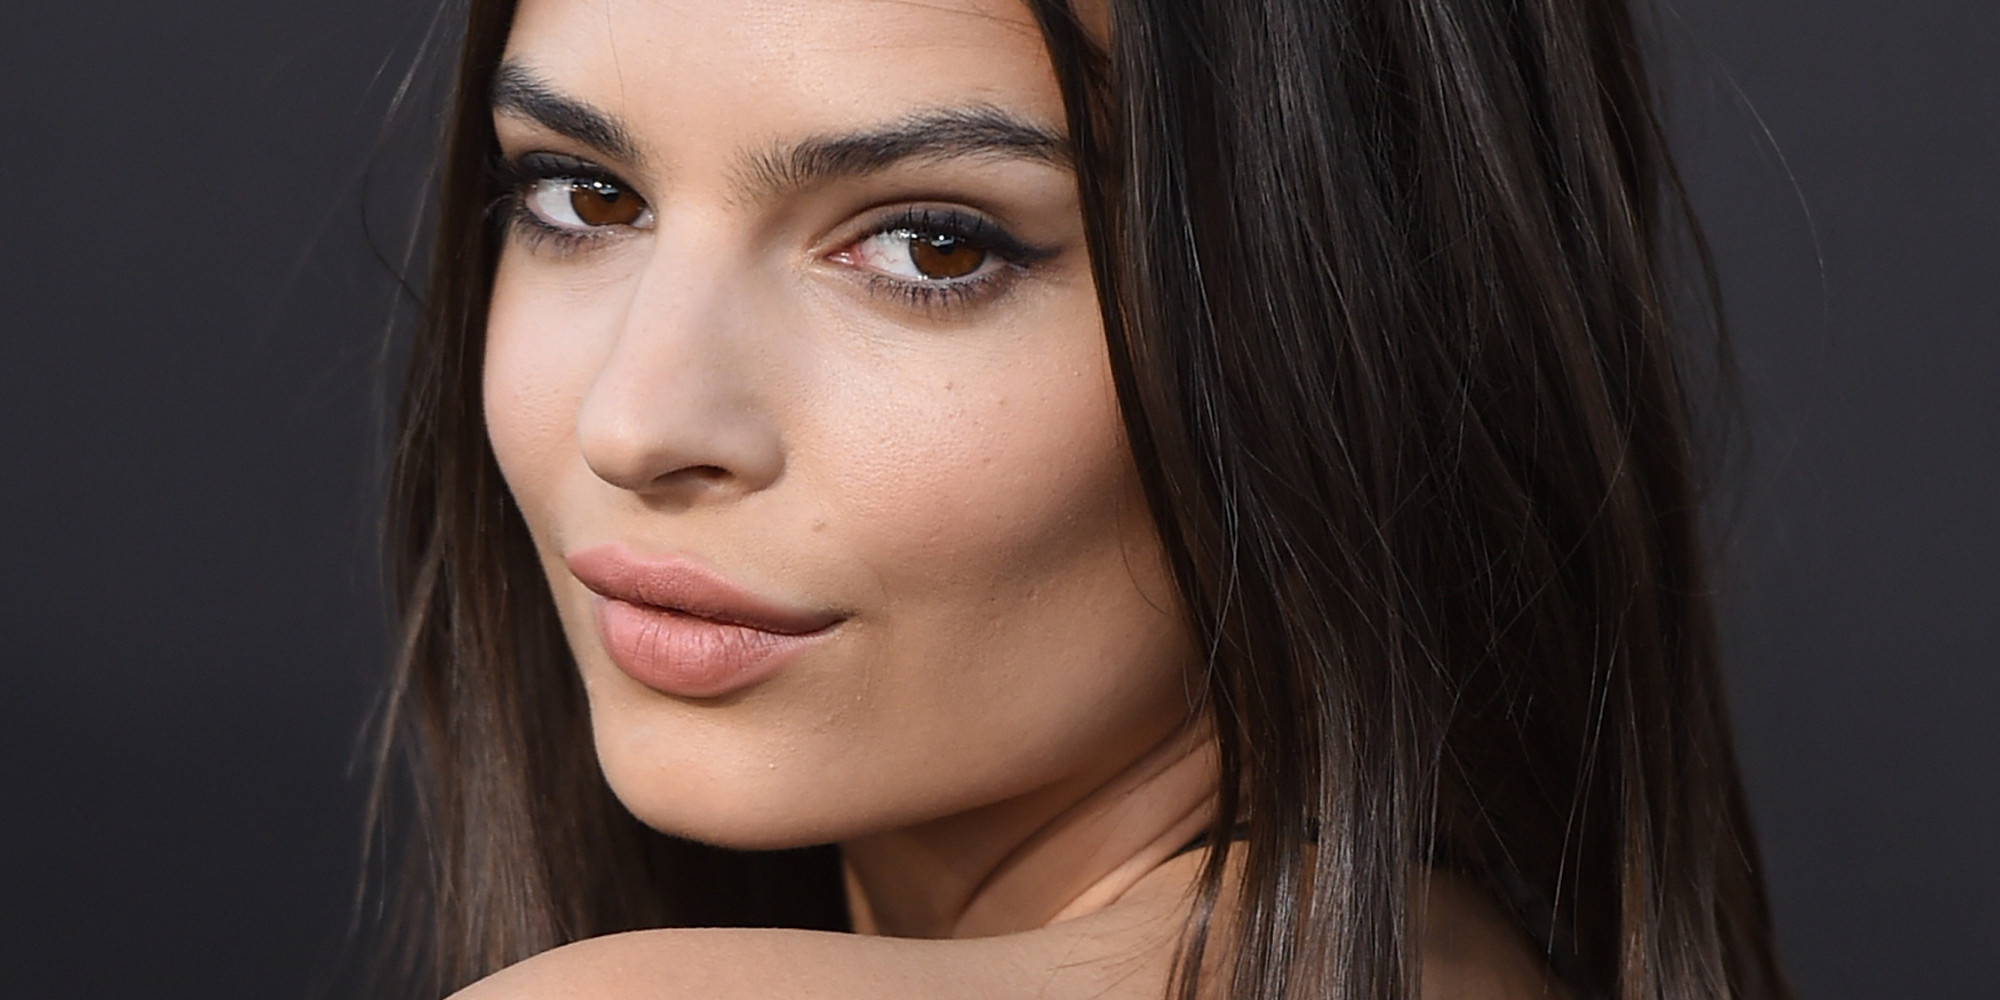 Emily Ratajkowski Wows In A Lace Dress After Posting Bathtub Selfie